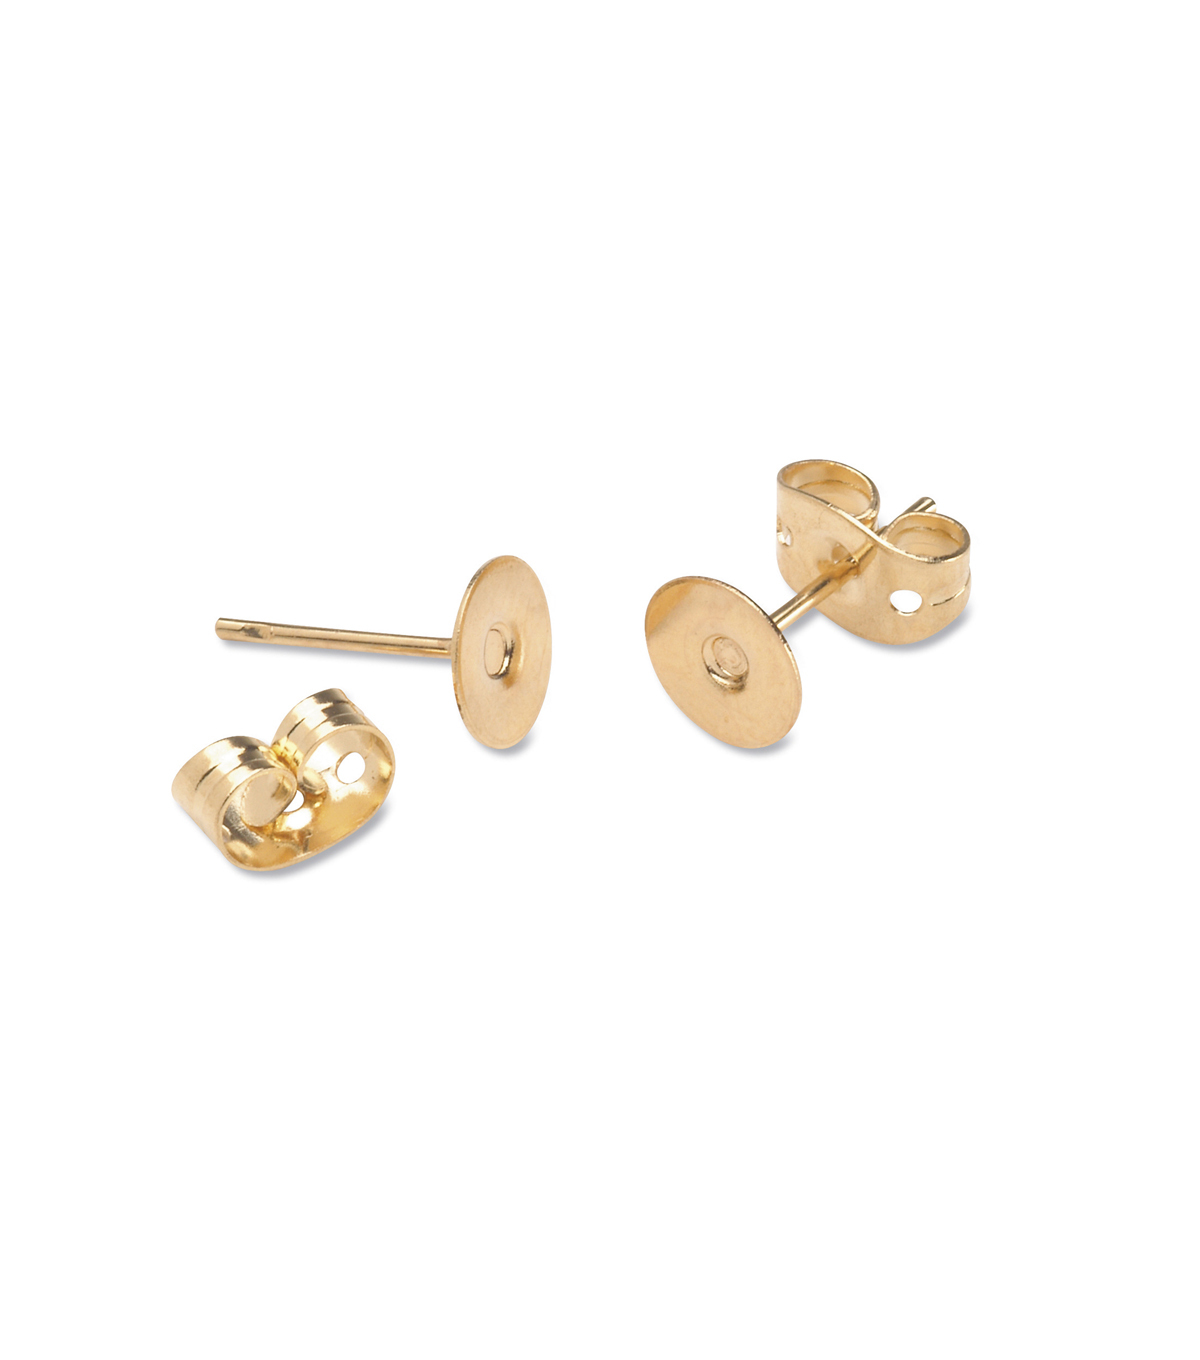 Brass Earring Post with 6mm Pad, Gold